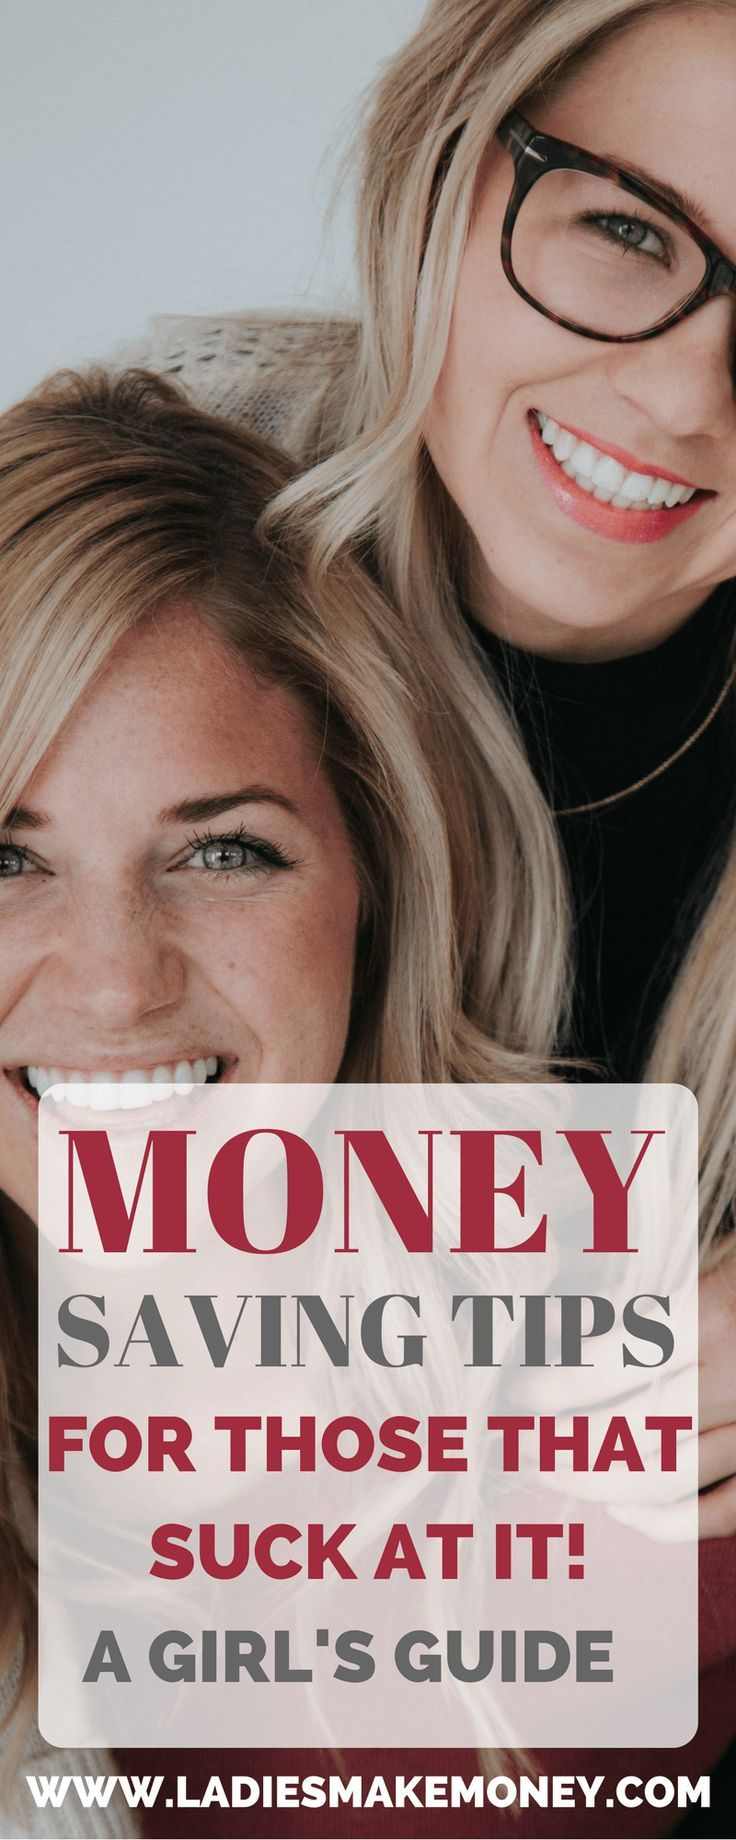 How to save money. Here a few tips on money saving tips to grow your bank account. Are you frugal? Here are the frugal ideas that will save you lots of money each month.